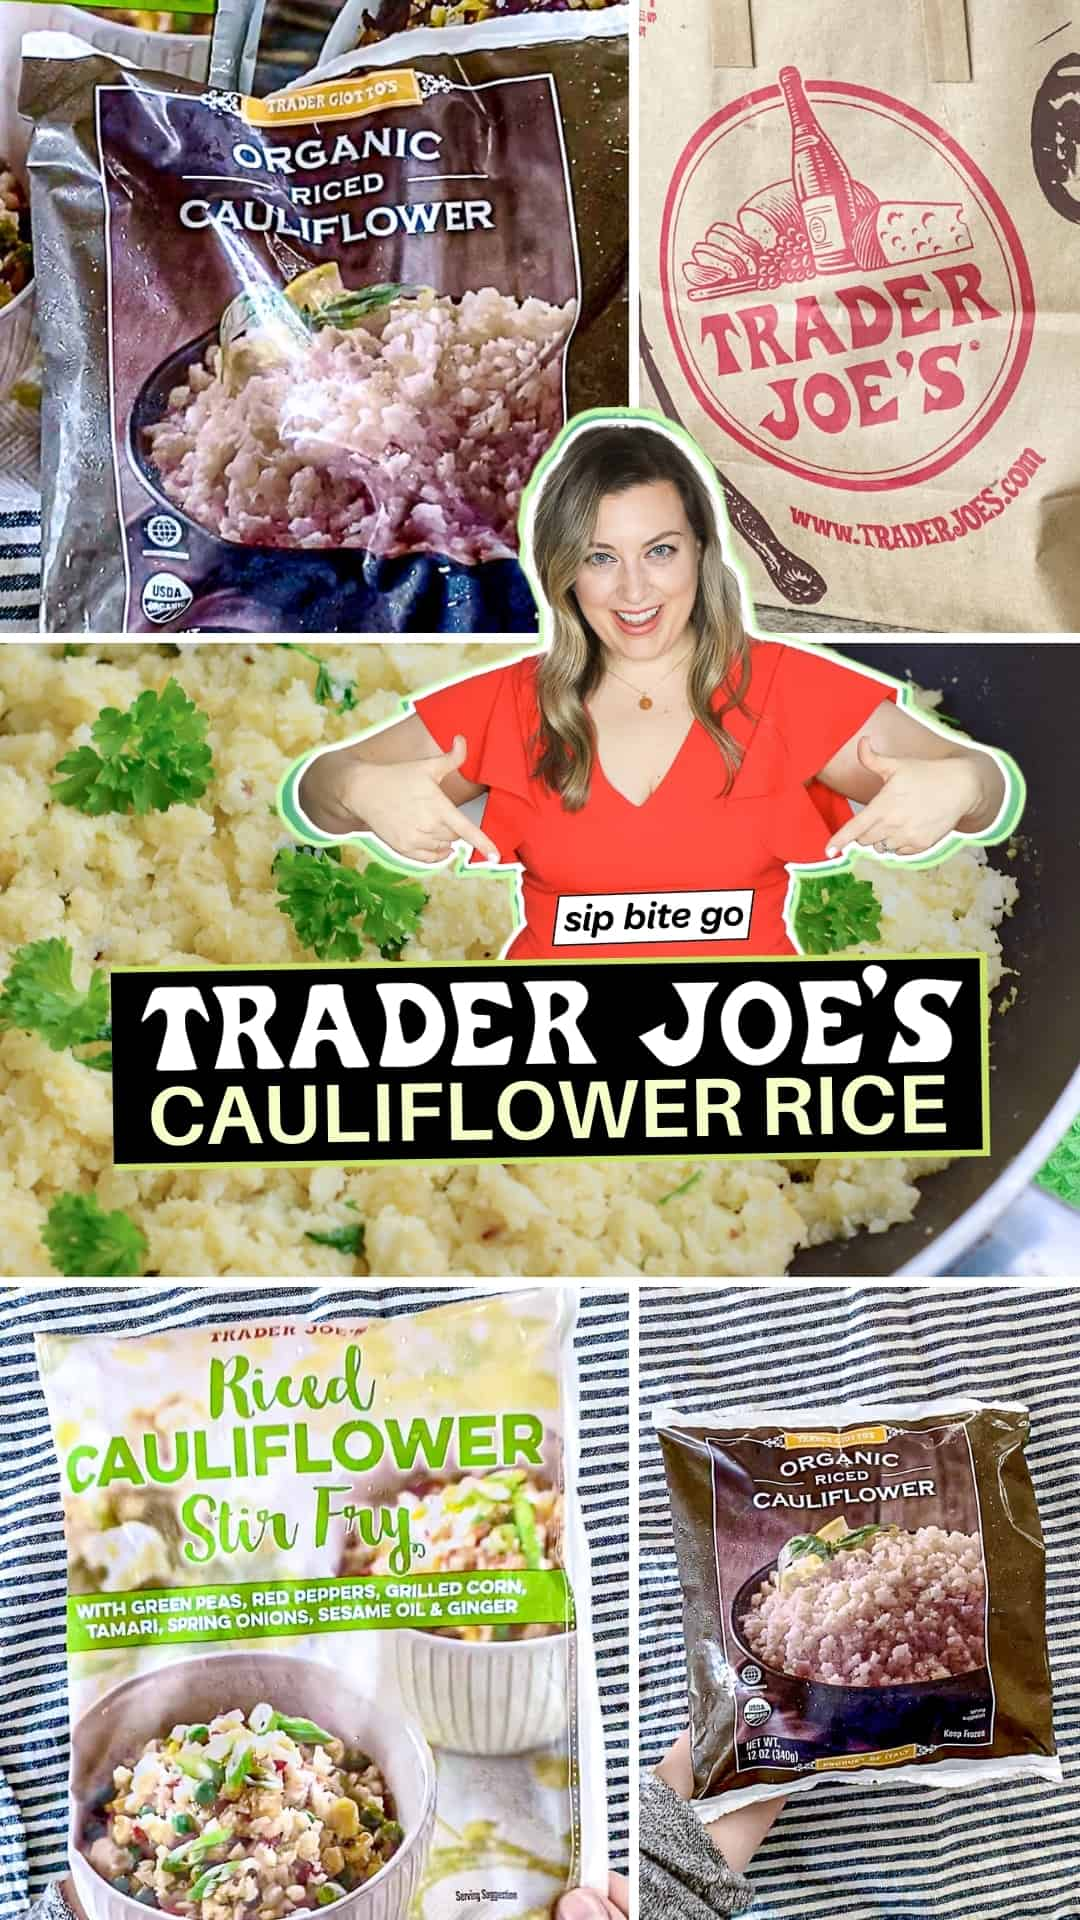 Trader Joe's Cauliflower Rice Review Photo collage with bags of cauliflower rice products from Trader Joe's and text overlay.